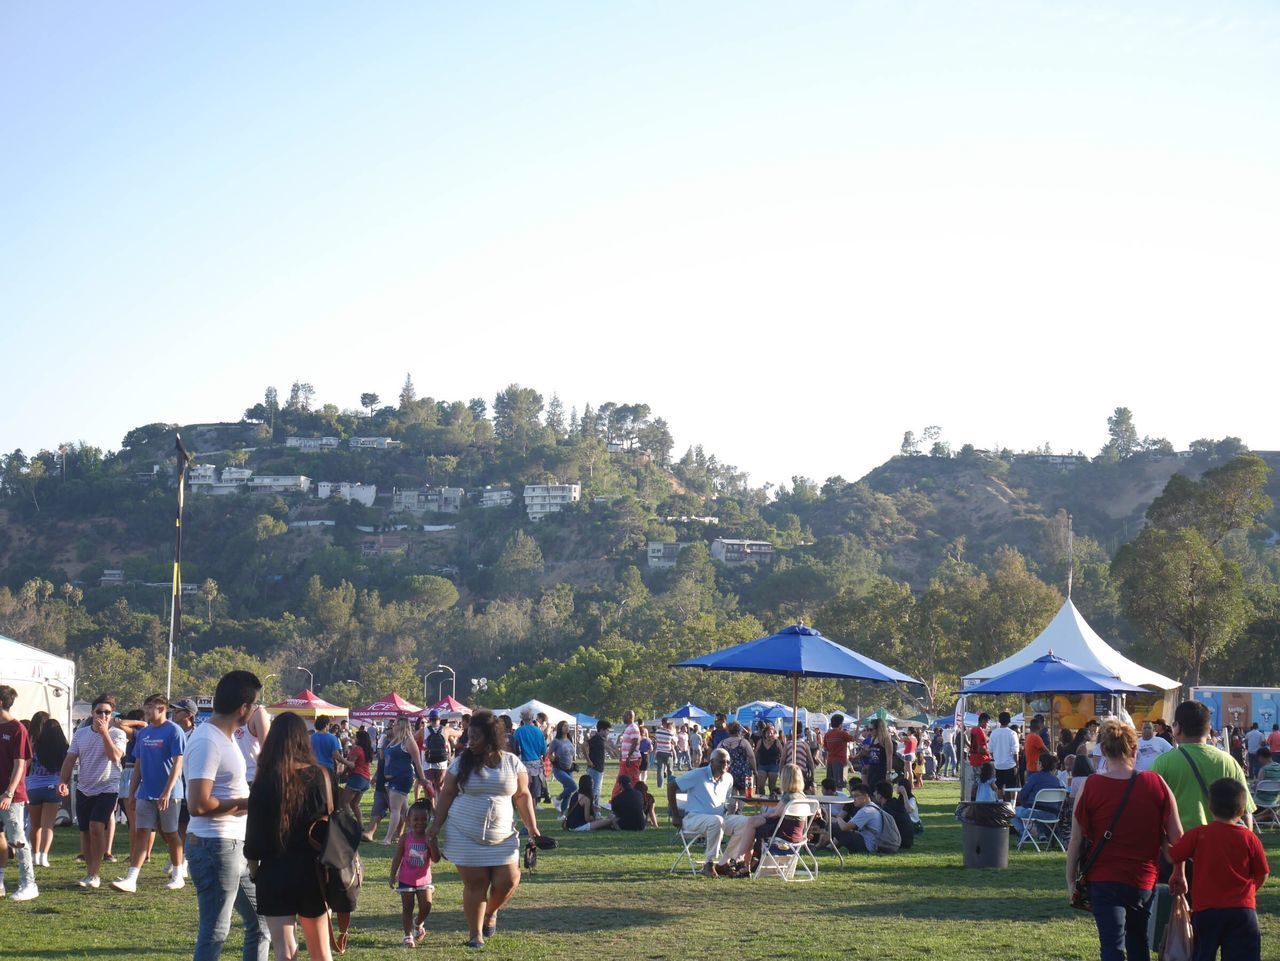 AmericanFestivals 4th Of July July4th Independence Day Americanfest Festival Rosebowlstadium Camping Holiday People Peopleandnature